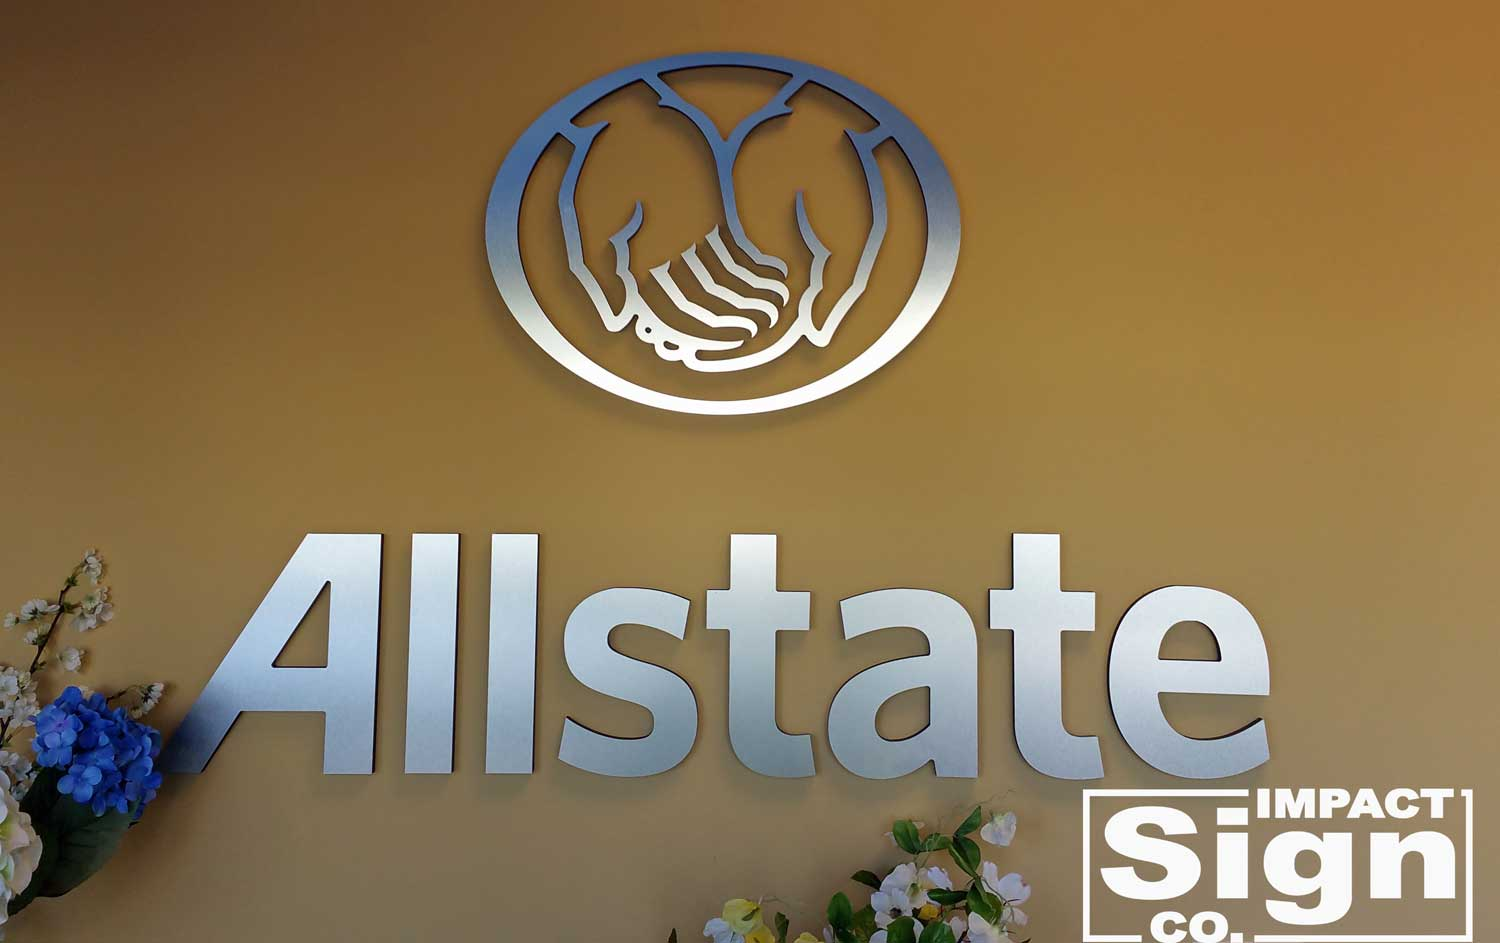 Allstate Lobby Dimensional Sign & Logo